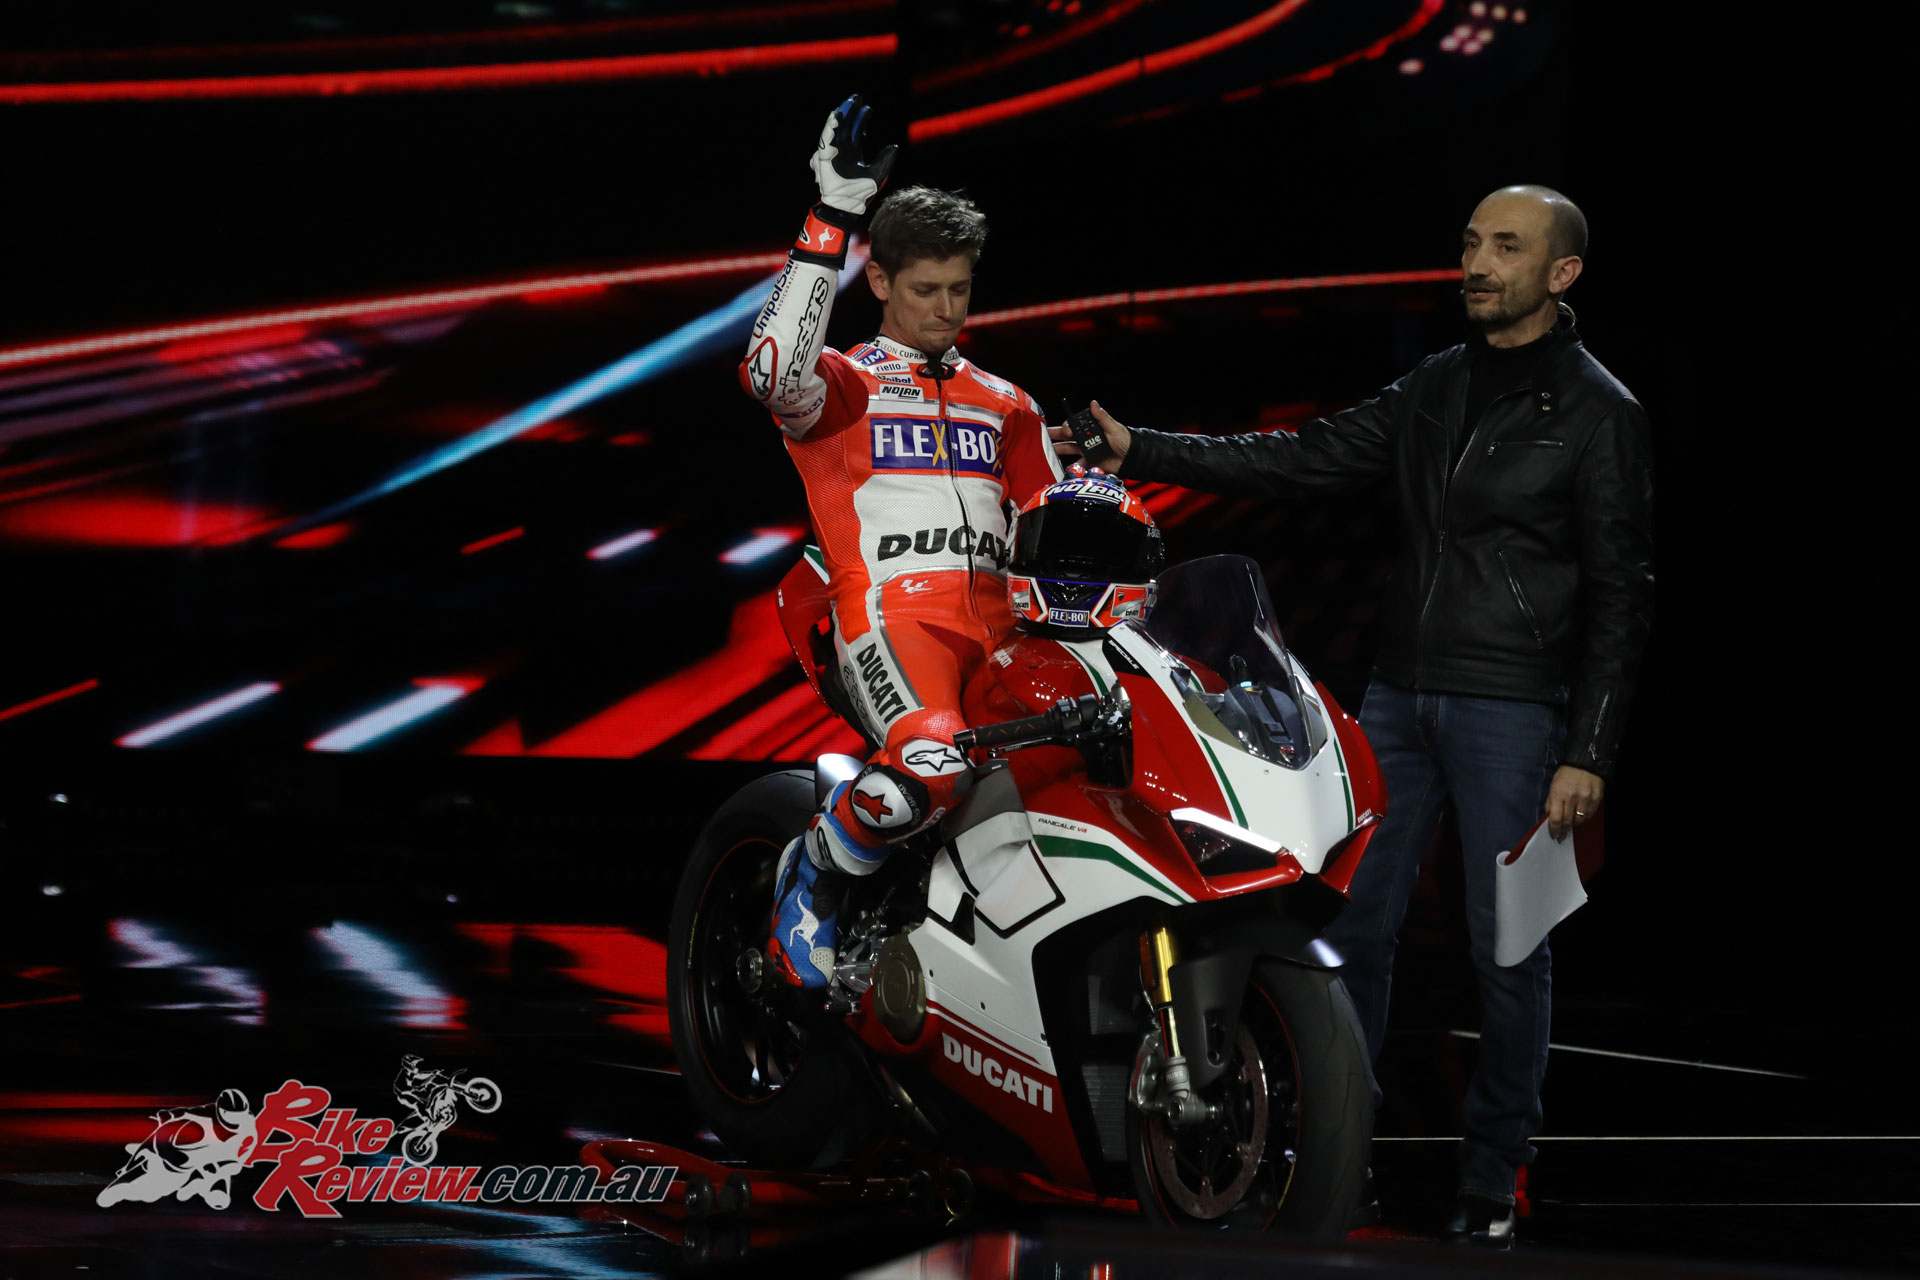 Casey Stoner brought out the limited edition Panigale V4 Speciale